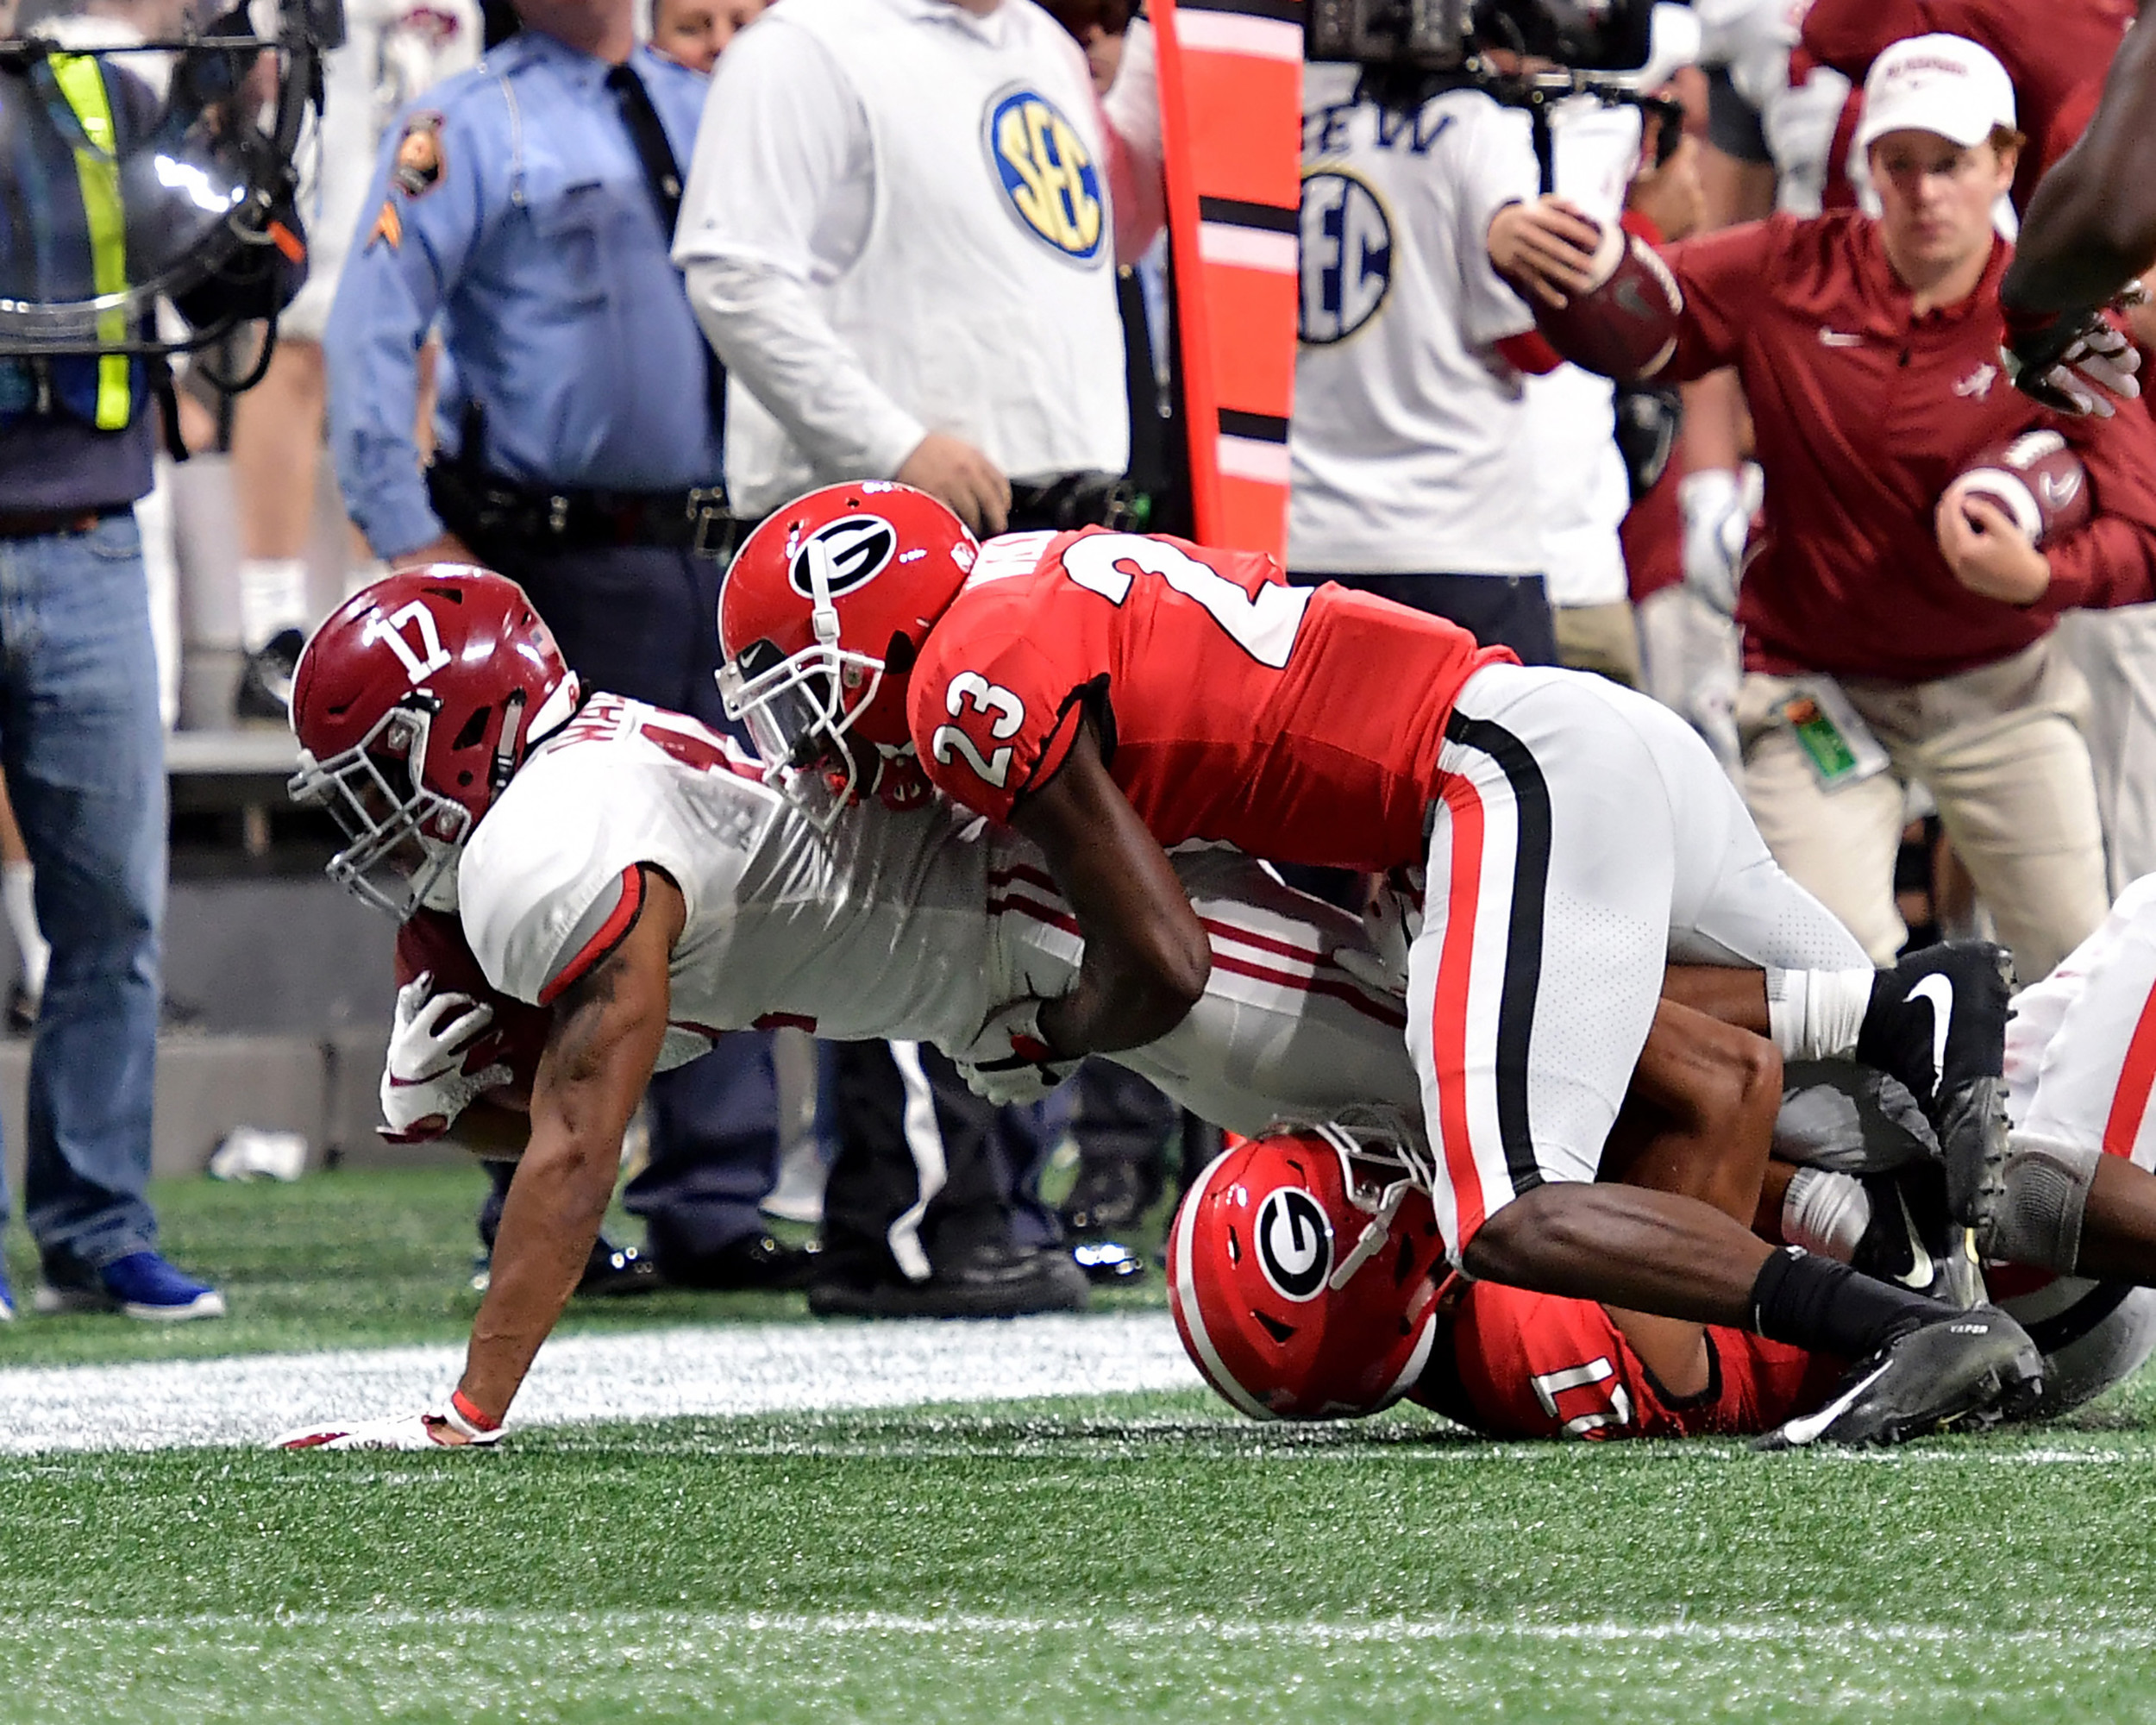 From second half of the 2018 SEC Championship football game, featuring the Georgia Bulldogs and the Alabama Crimson Tide, at Mercedes-Benz Stadium in Atlanta, Ga., on Dec. 1, 2018. Alabama wins 35-28. (Photo by Lee Walls)